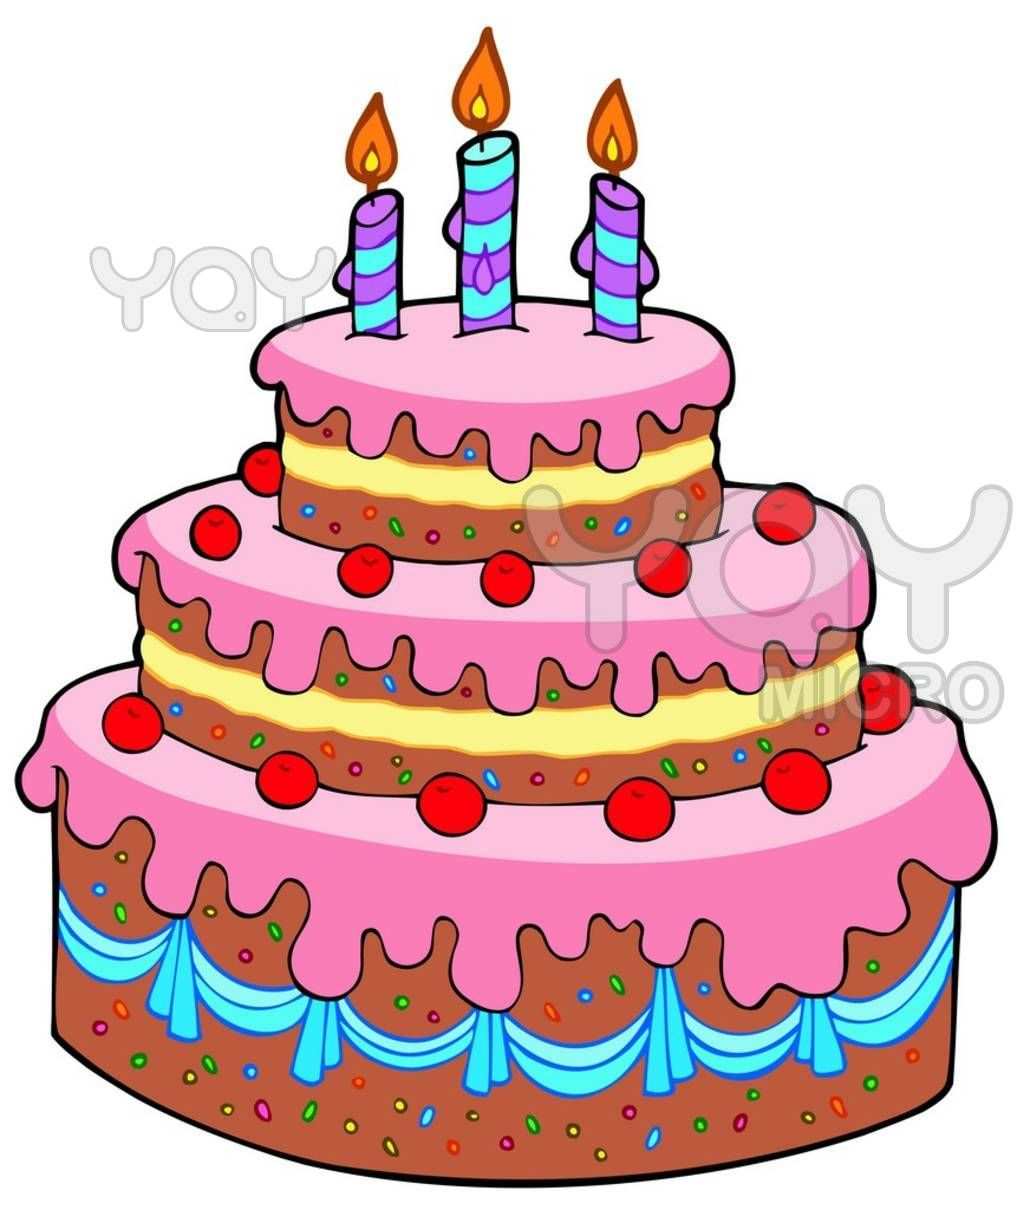 17+ Clipart birthday cake with candles ideas